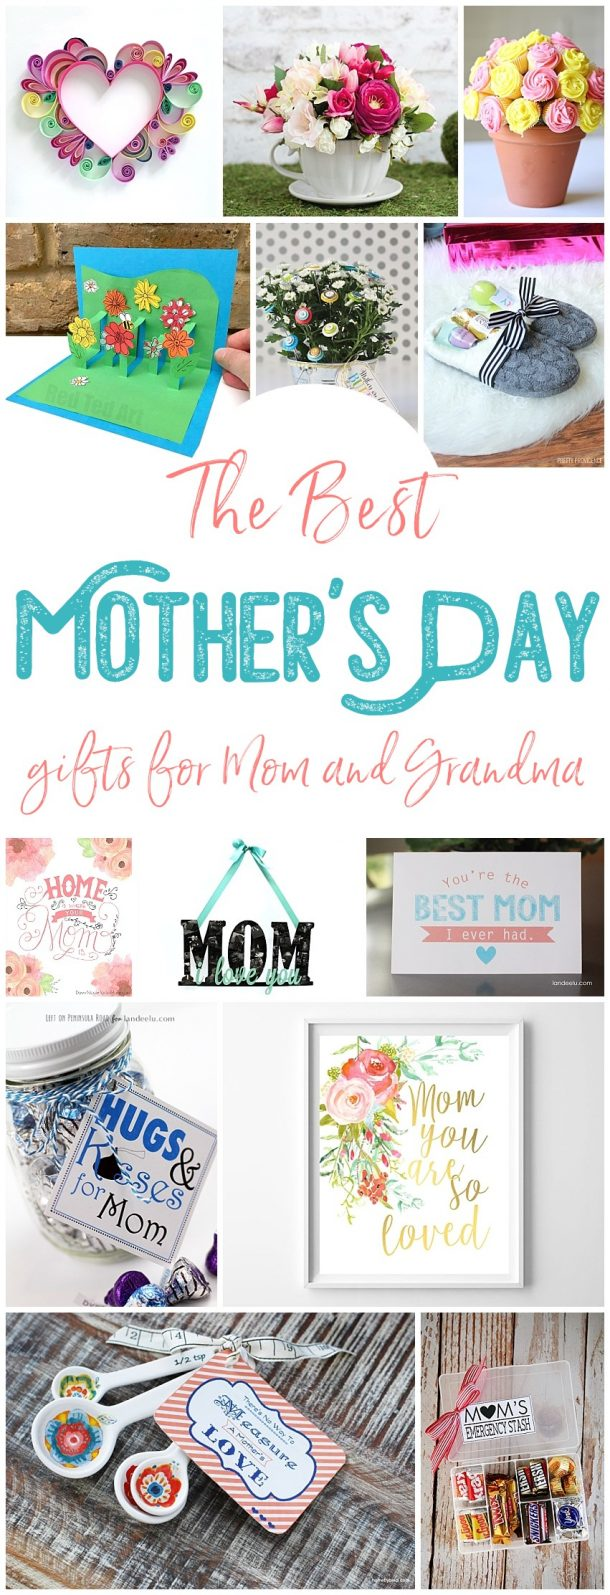 The best easy diy mothers day gifts and treats ideas holiday the best easy diy mothers day gifts and treats ideas holiday craft activity projects solutioingenieria Gallery